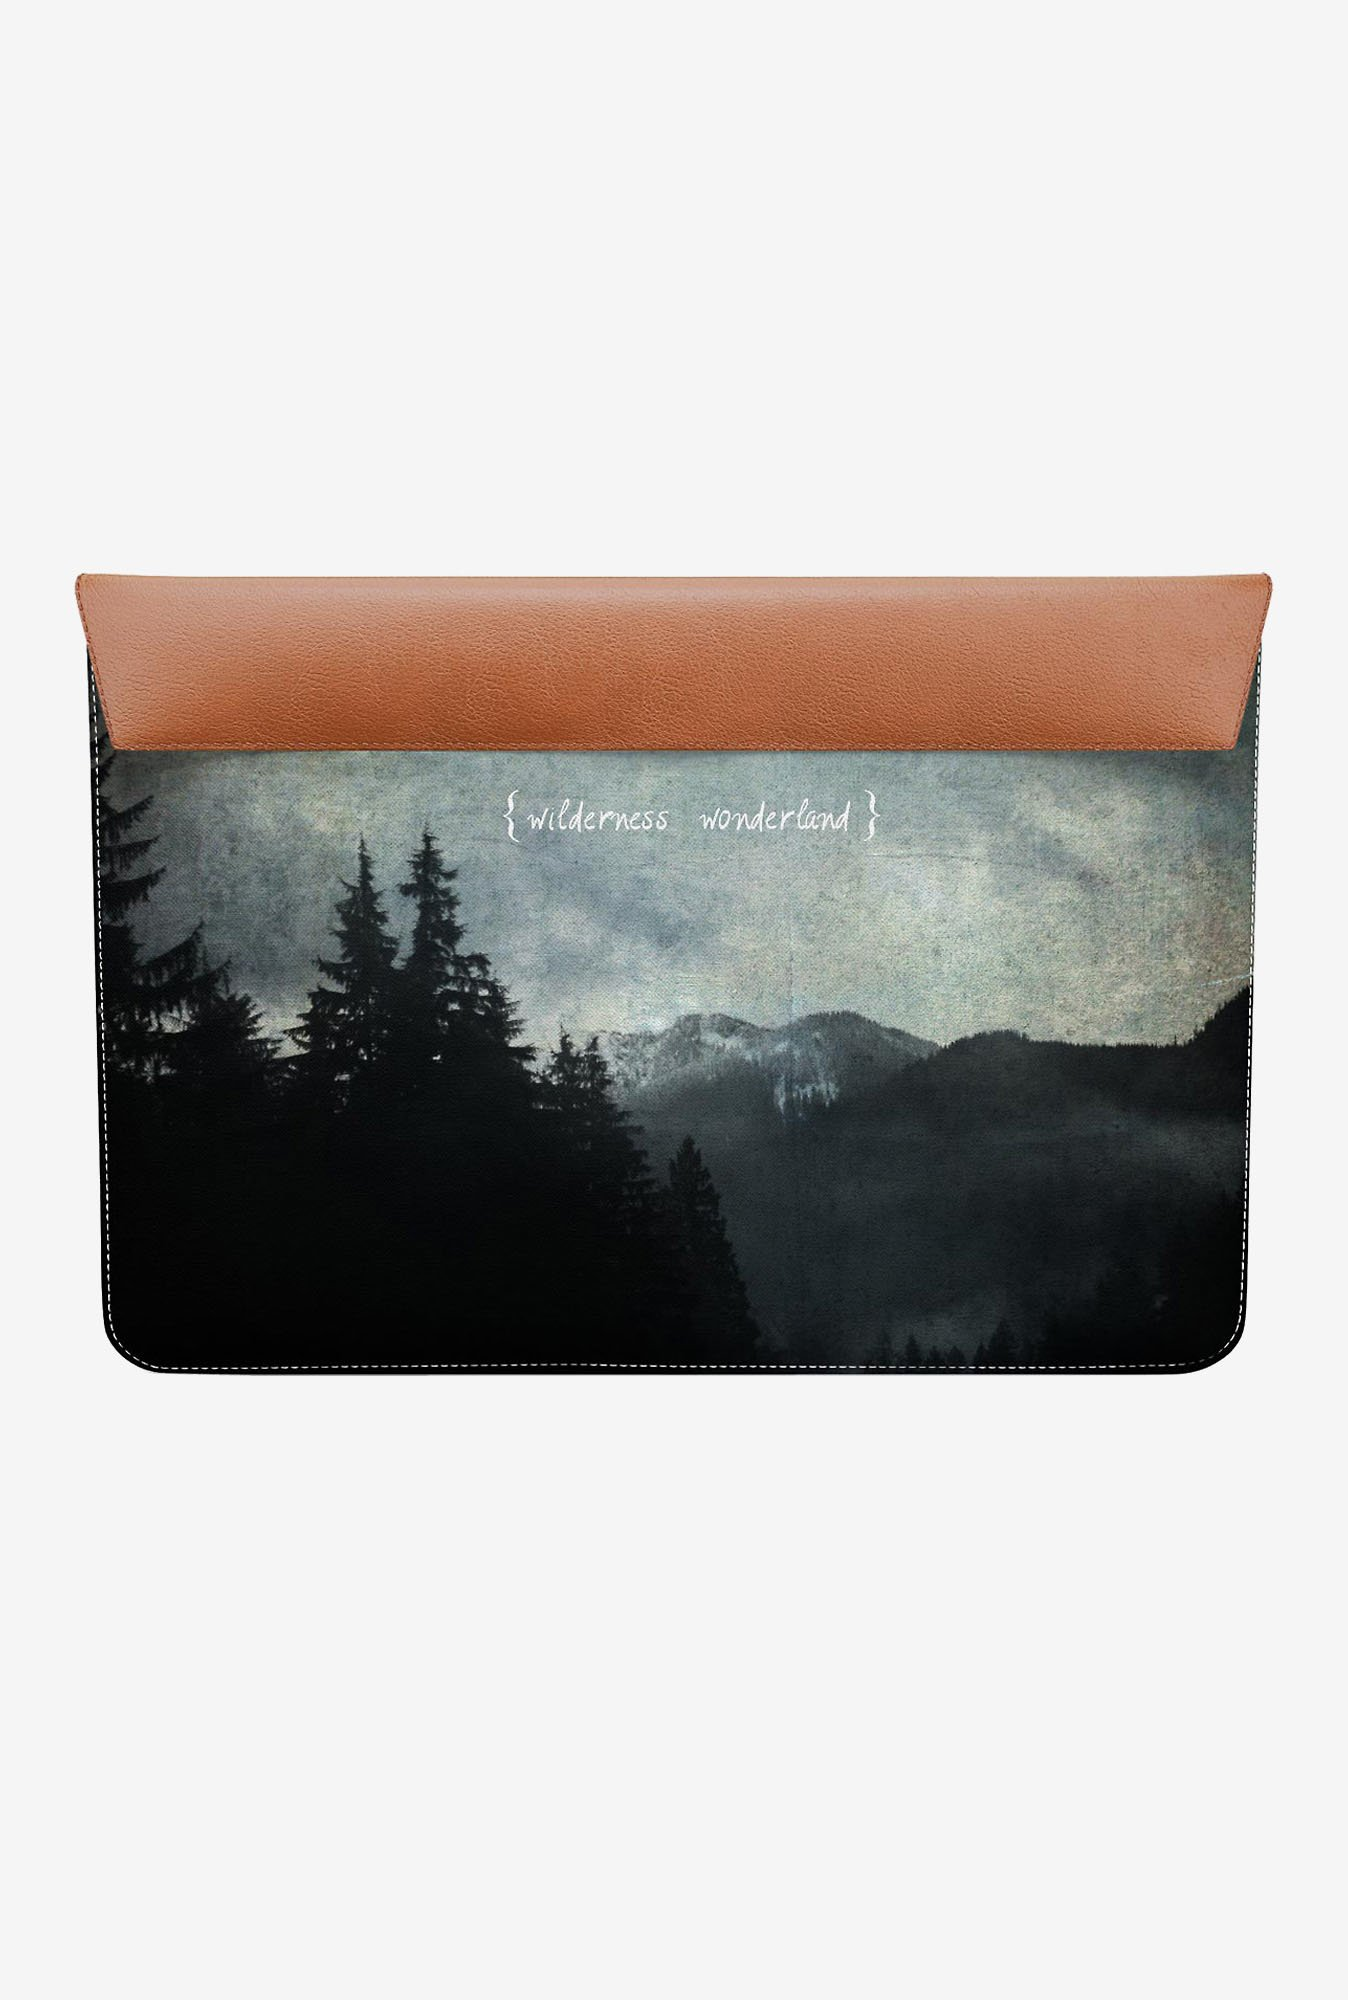 DailyObjects Wonderland MacBook Pro 15 Envelope Sleeve